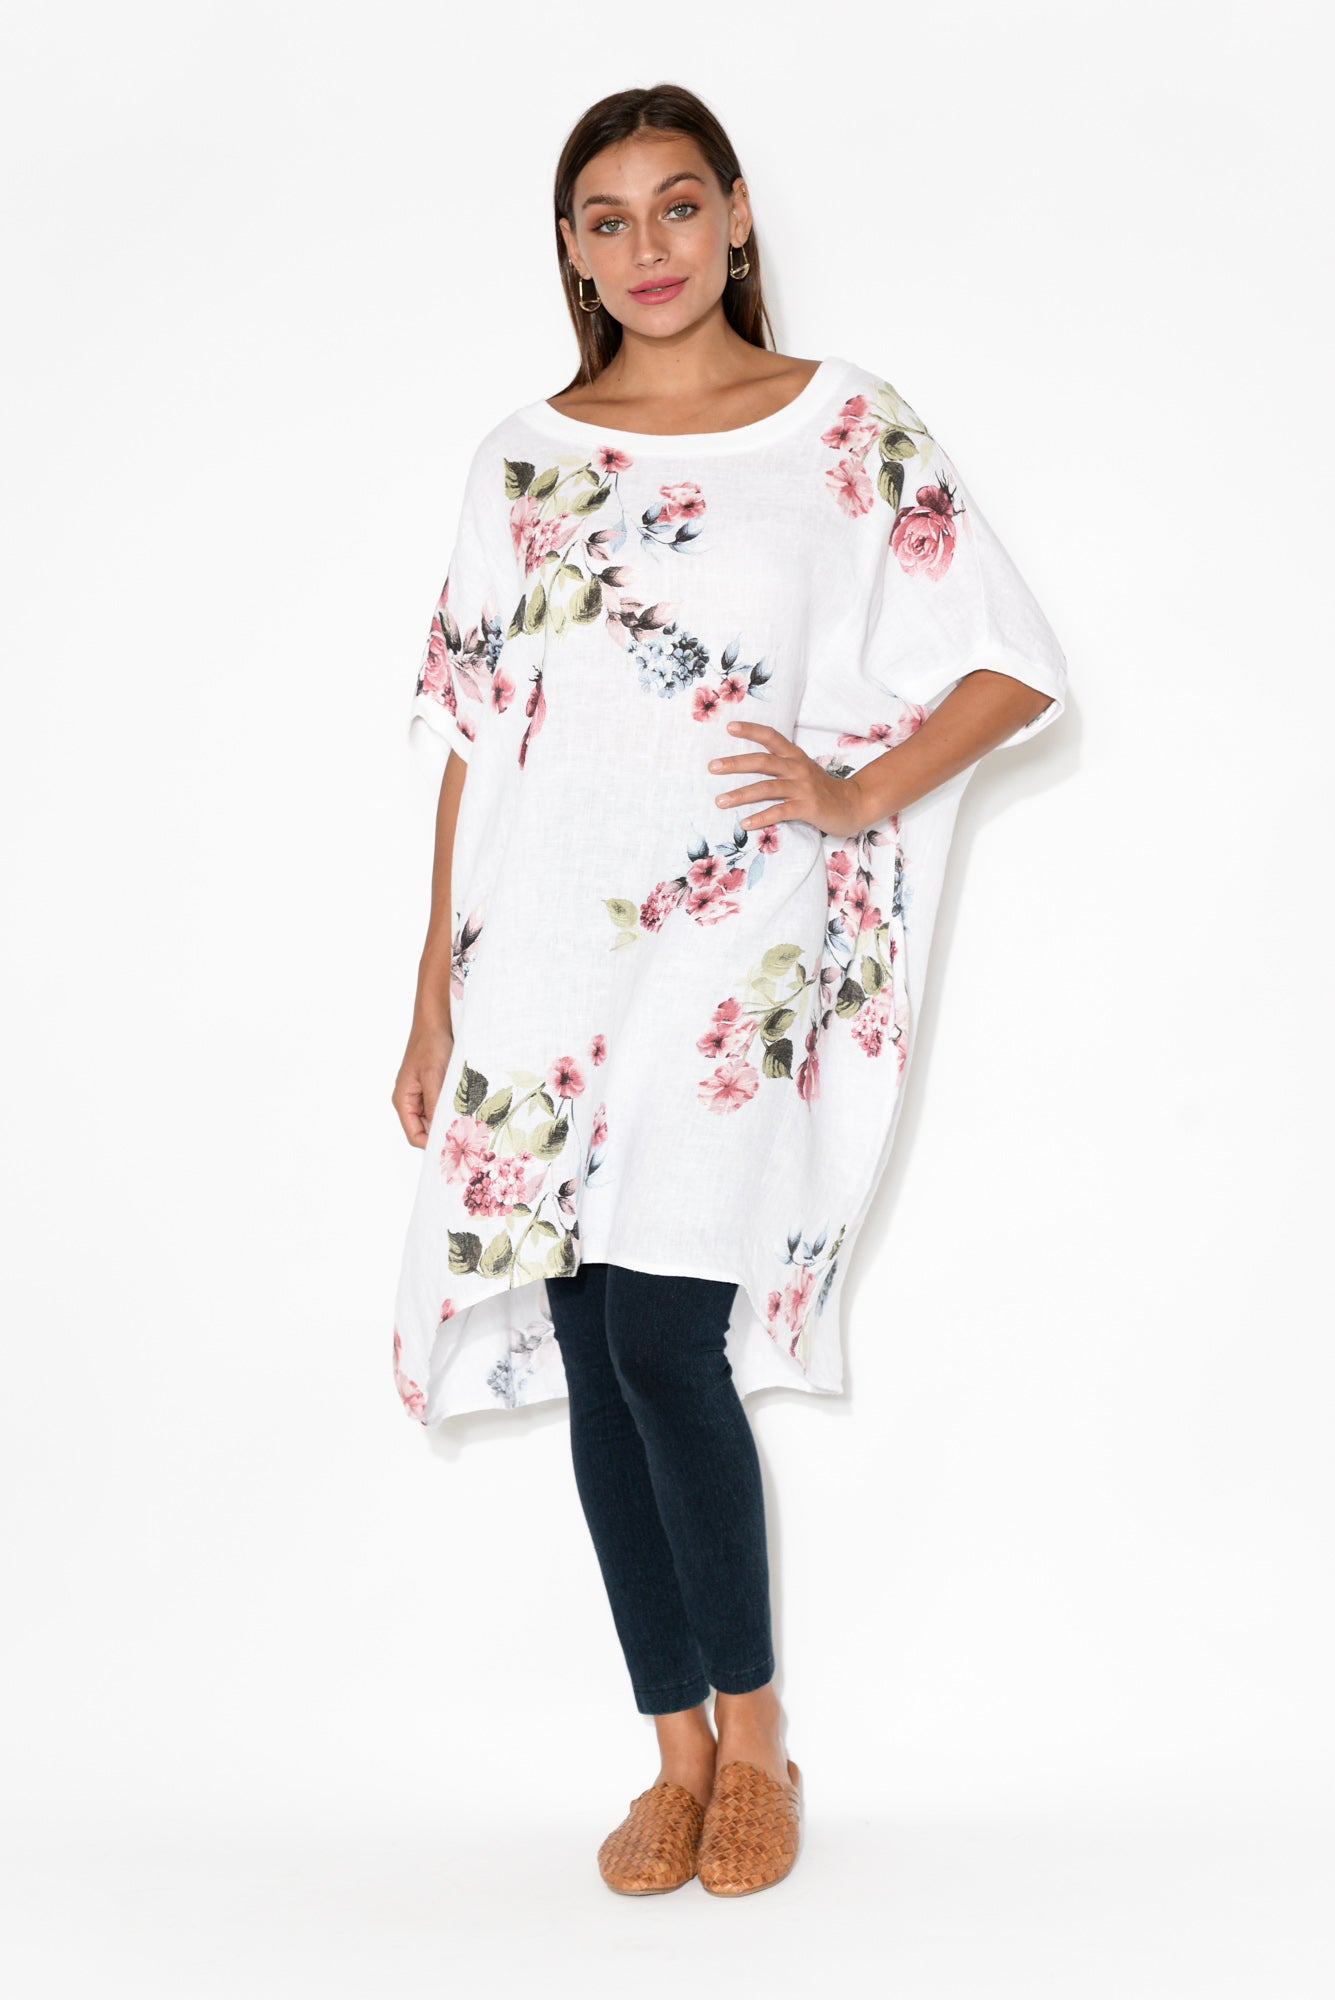 Lucca White Floral Linen Dress